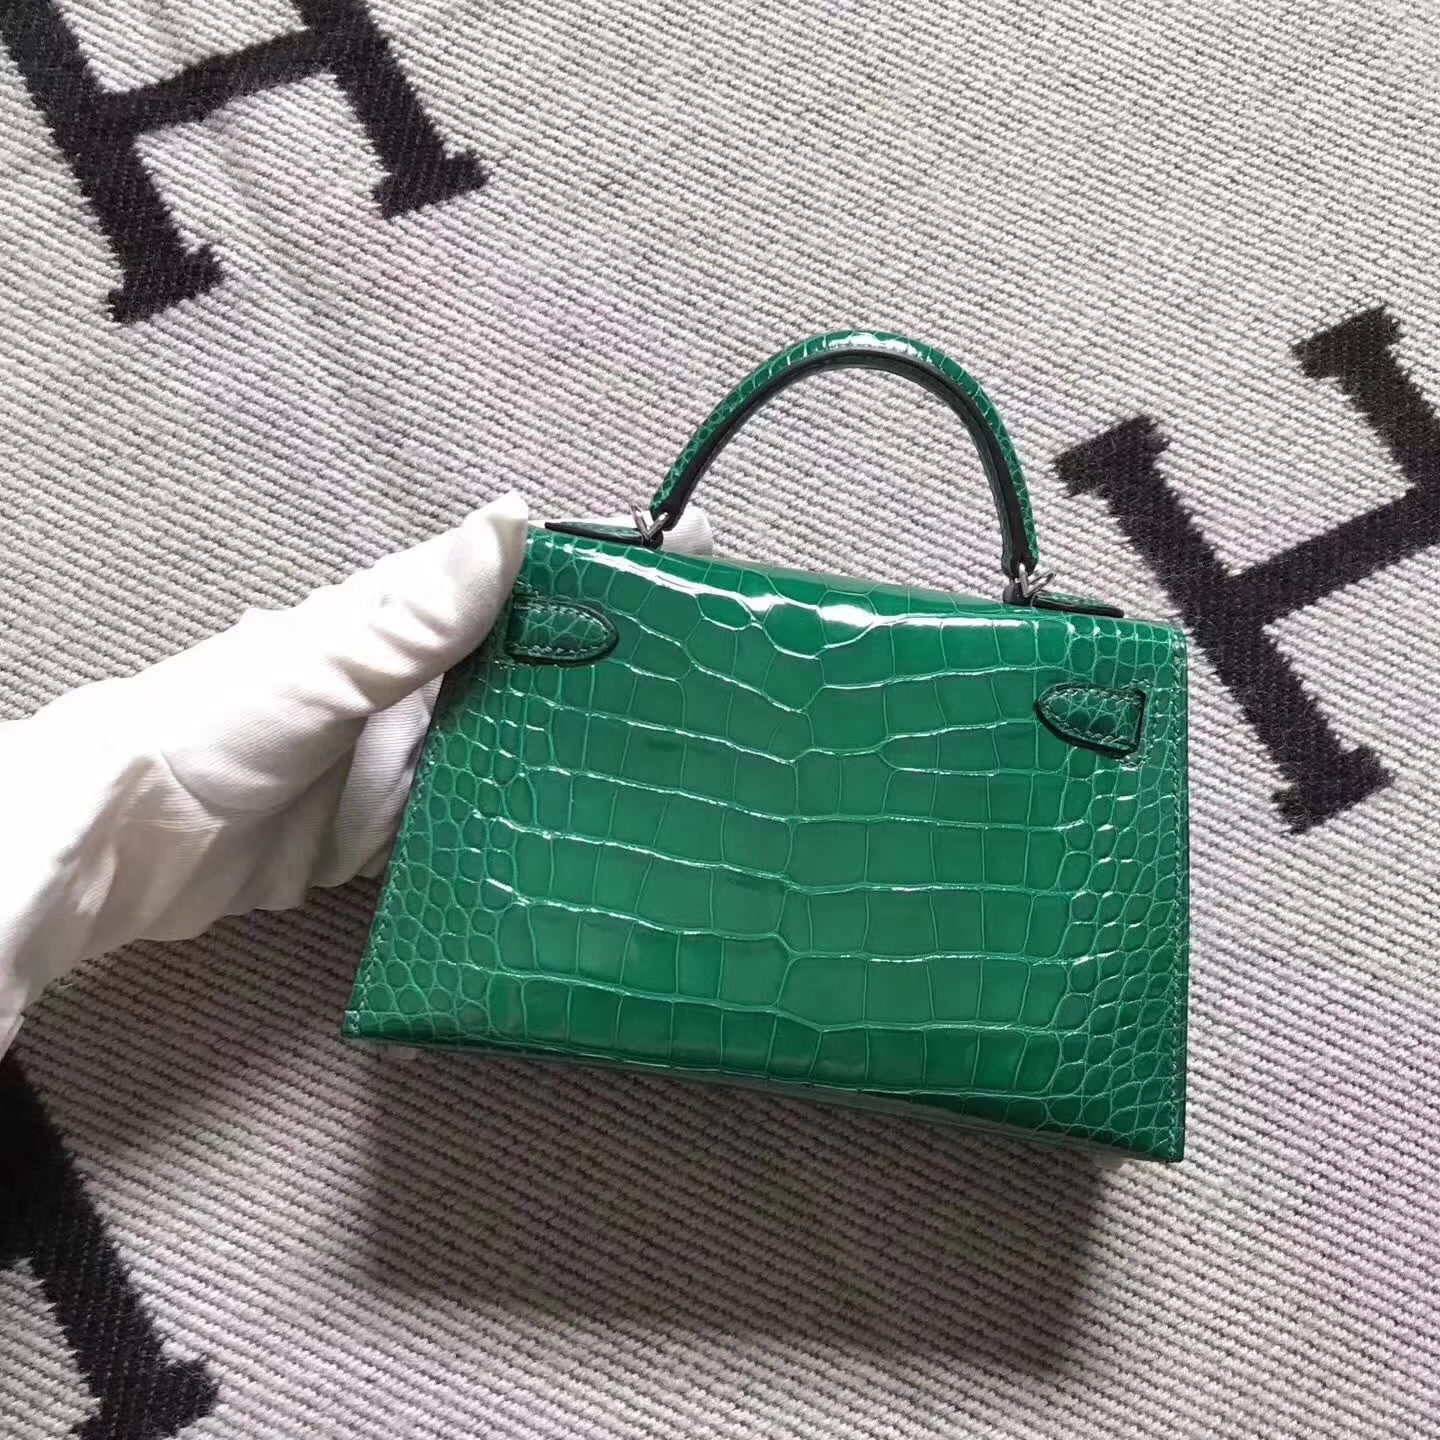 Fashion Hermes Vert Tipien Crocodile Shiny Leather Minikelly-2 Clutch Bag